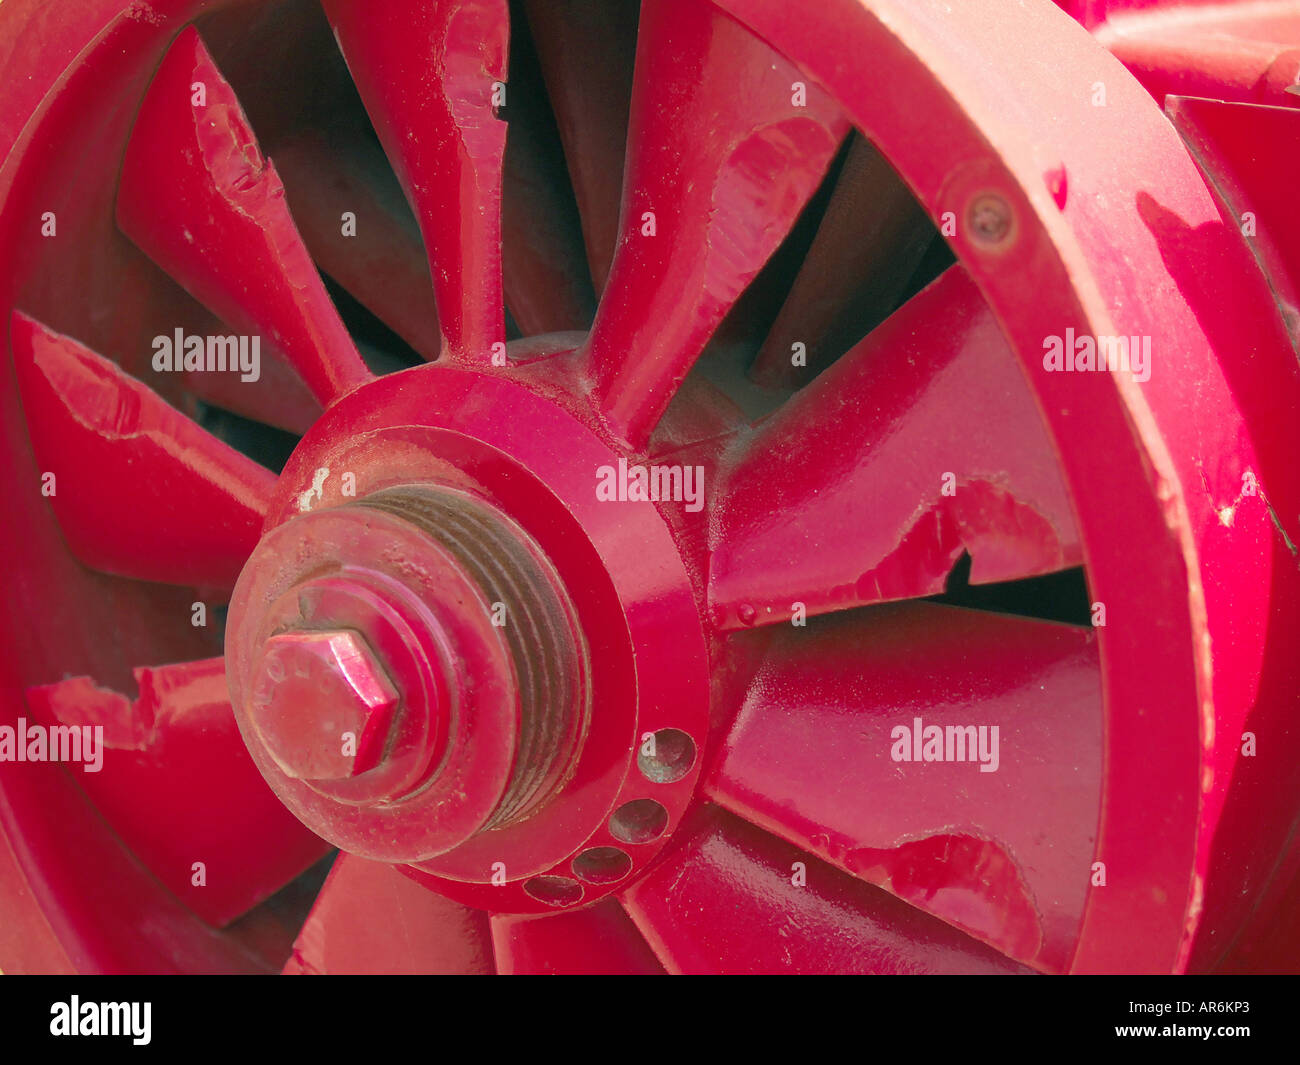 Close view of a large red industrial turbine with cracked fins. Stock Photo